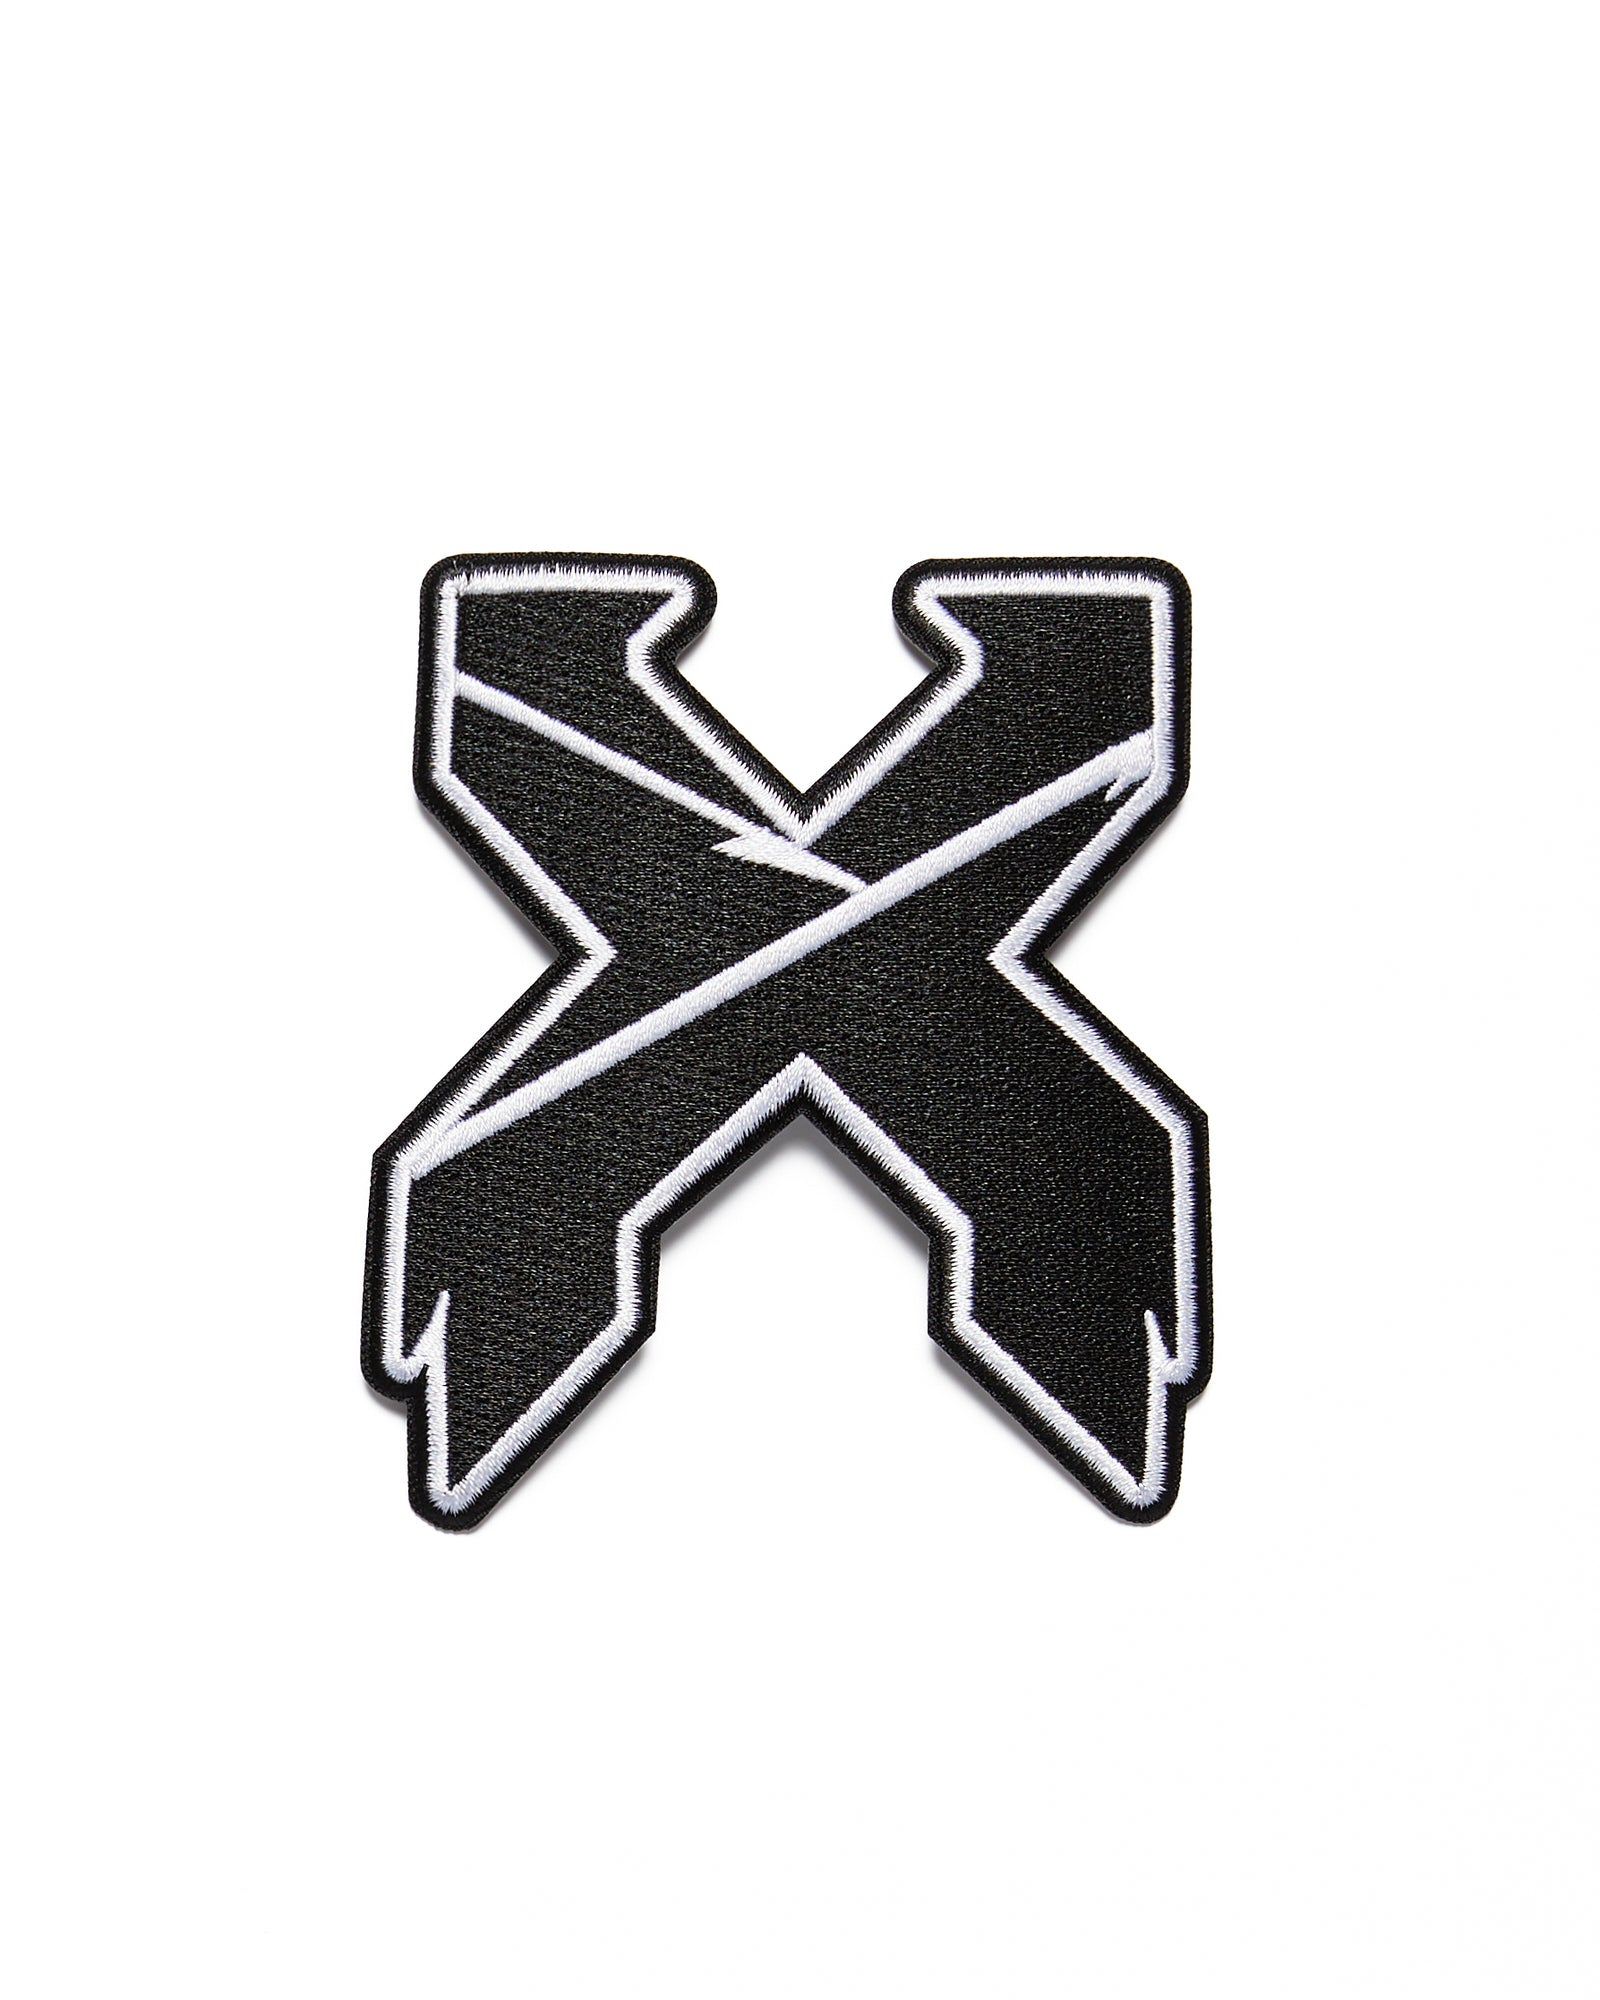 "Excision 'Sliced' Logo Patch - 4"" x 3.5"""